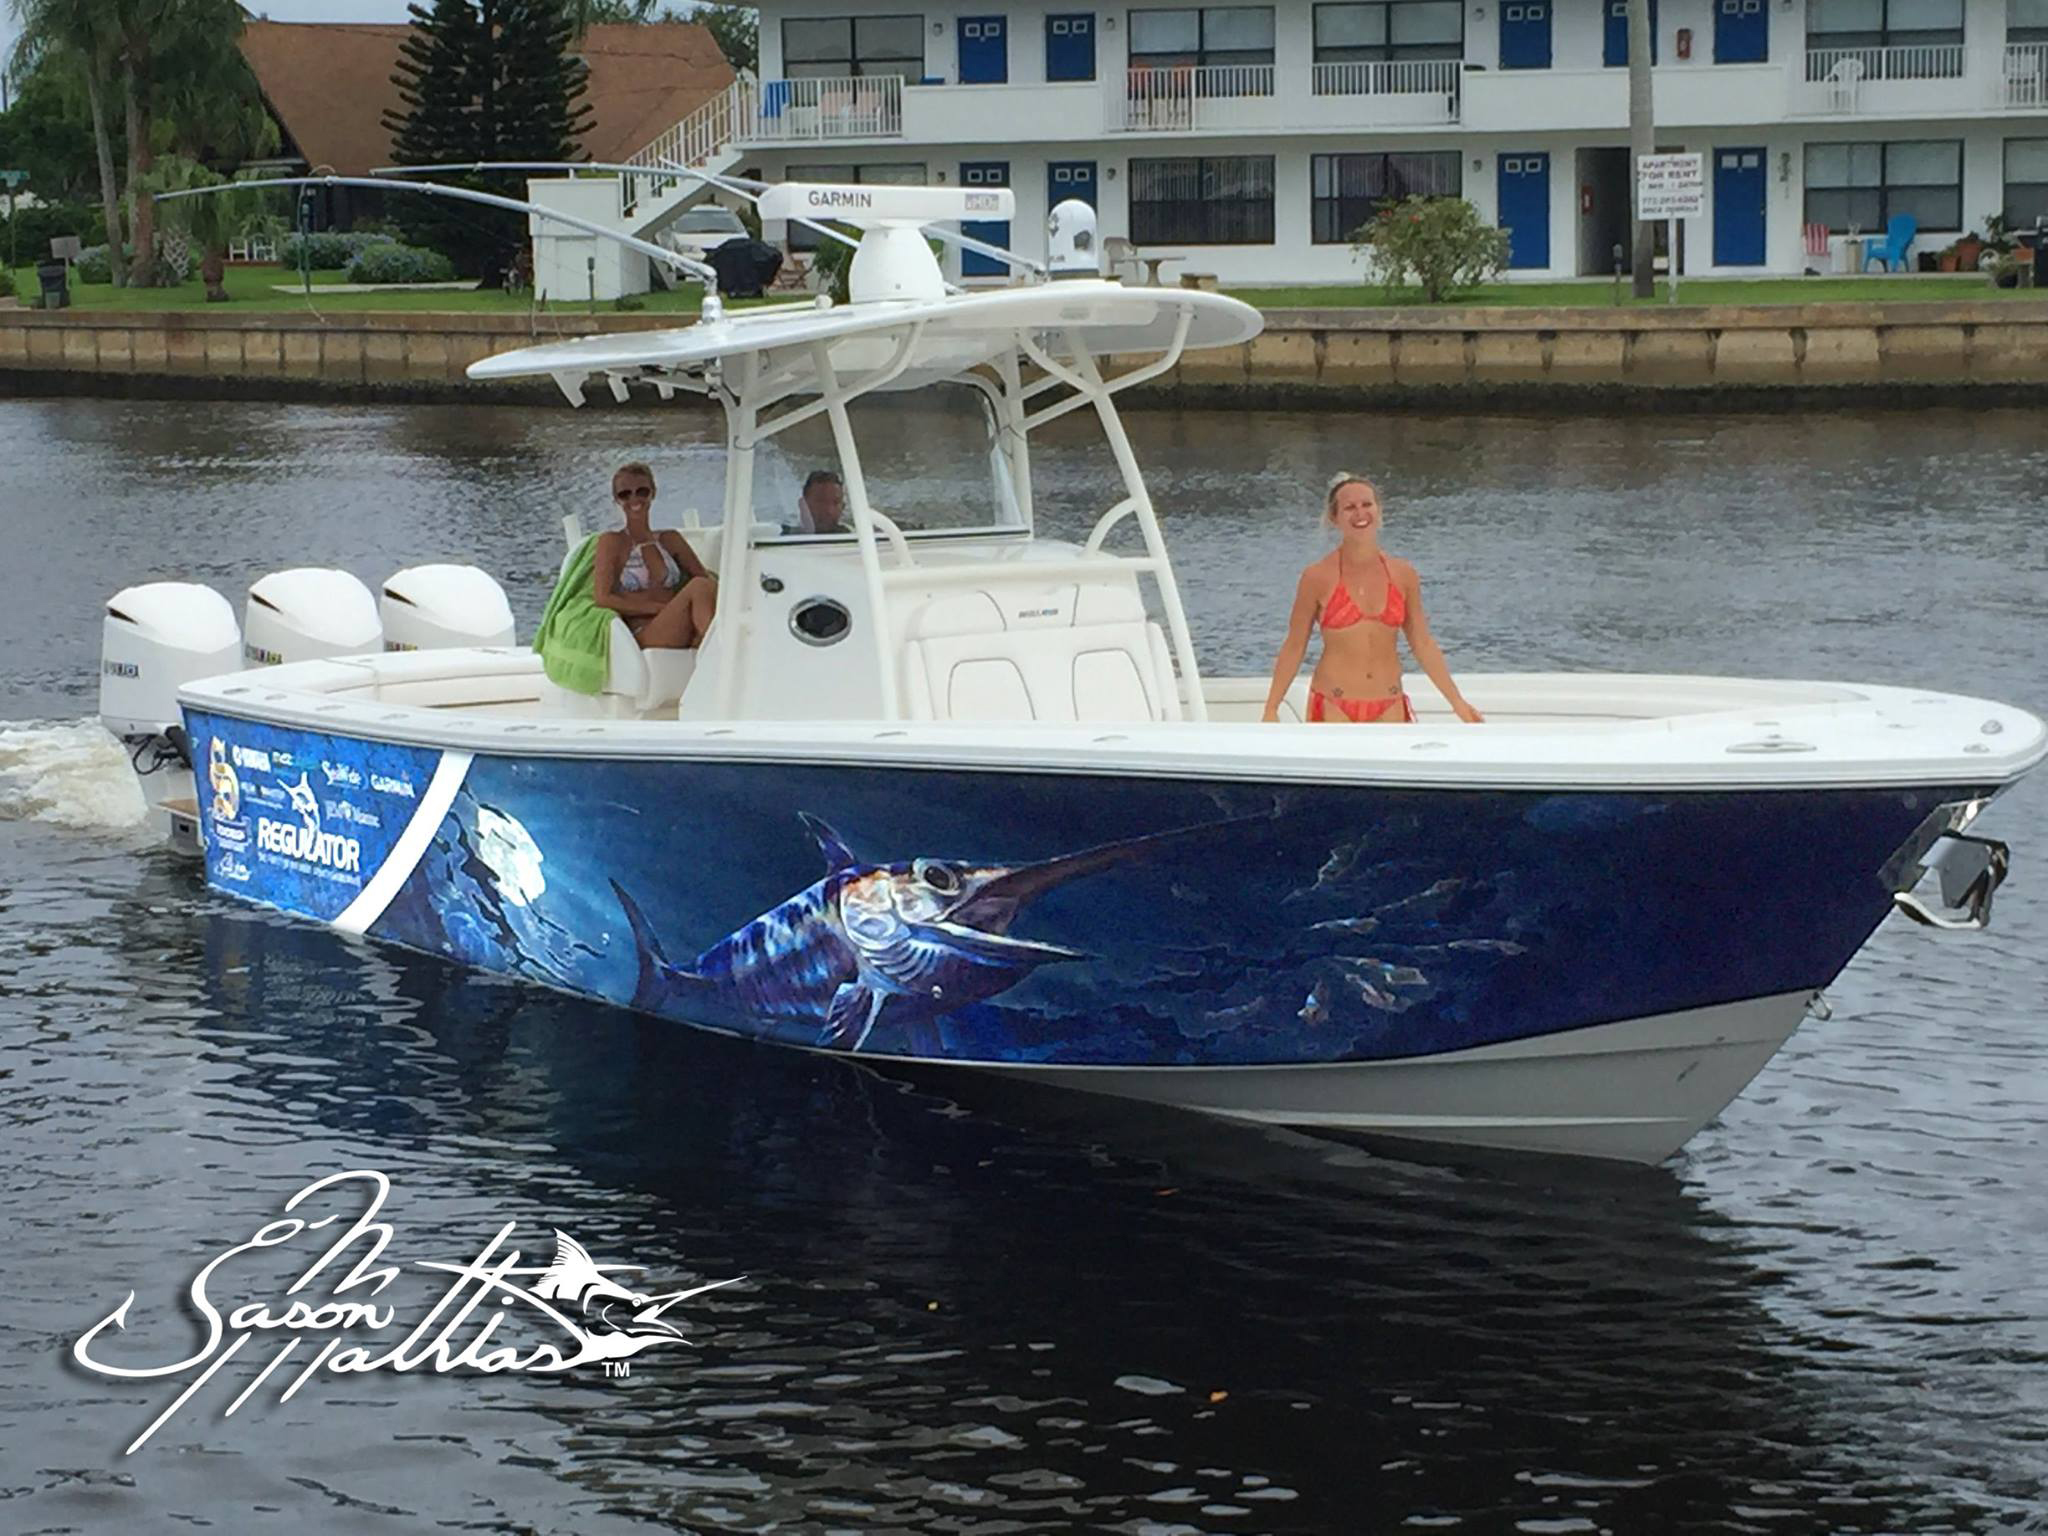 jason-mathias-boat-wrap-art-and-desing-custom-regulator-wraps.jpg